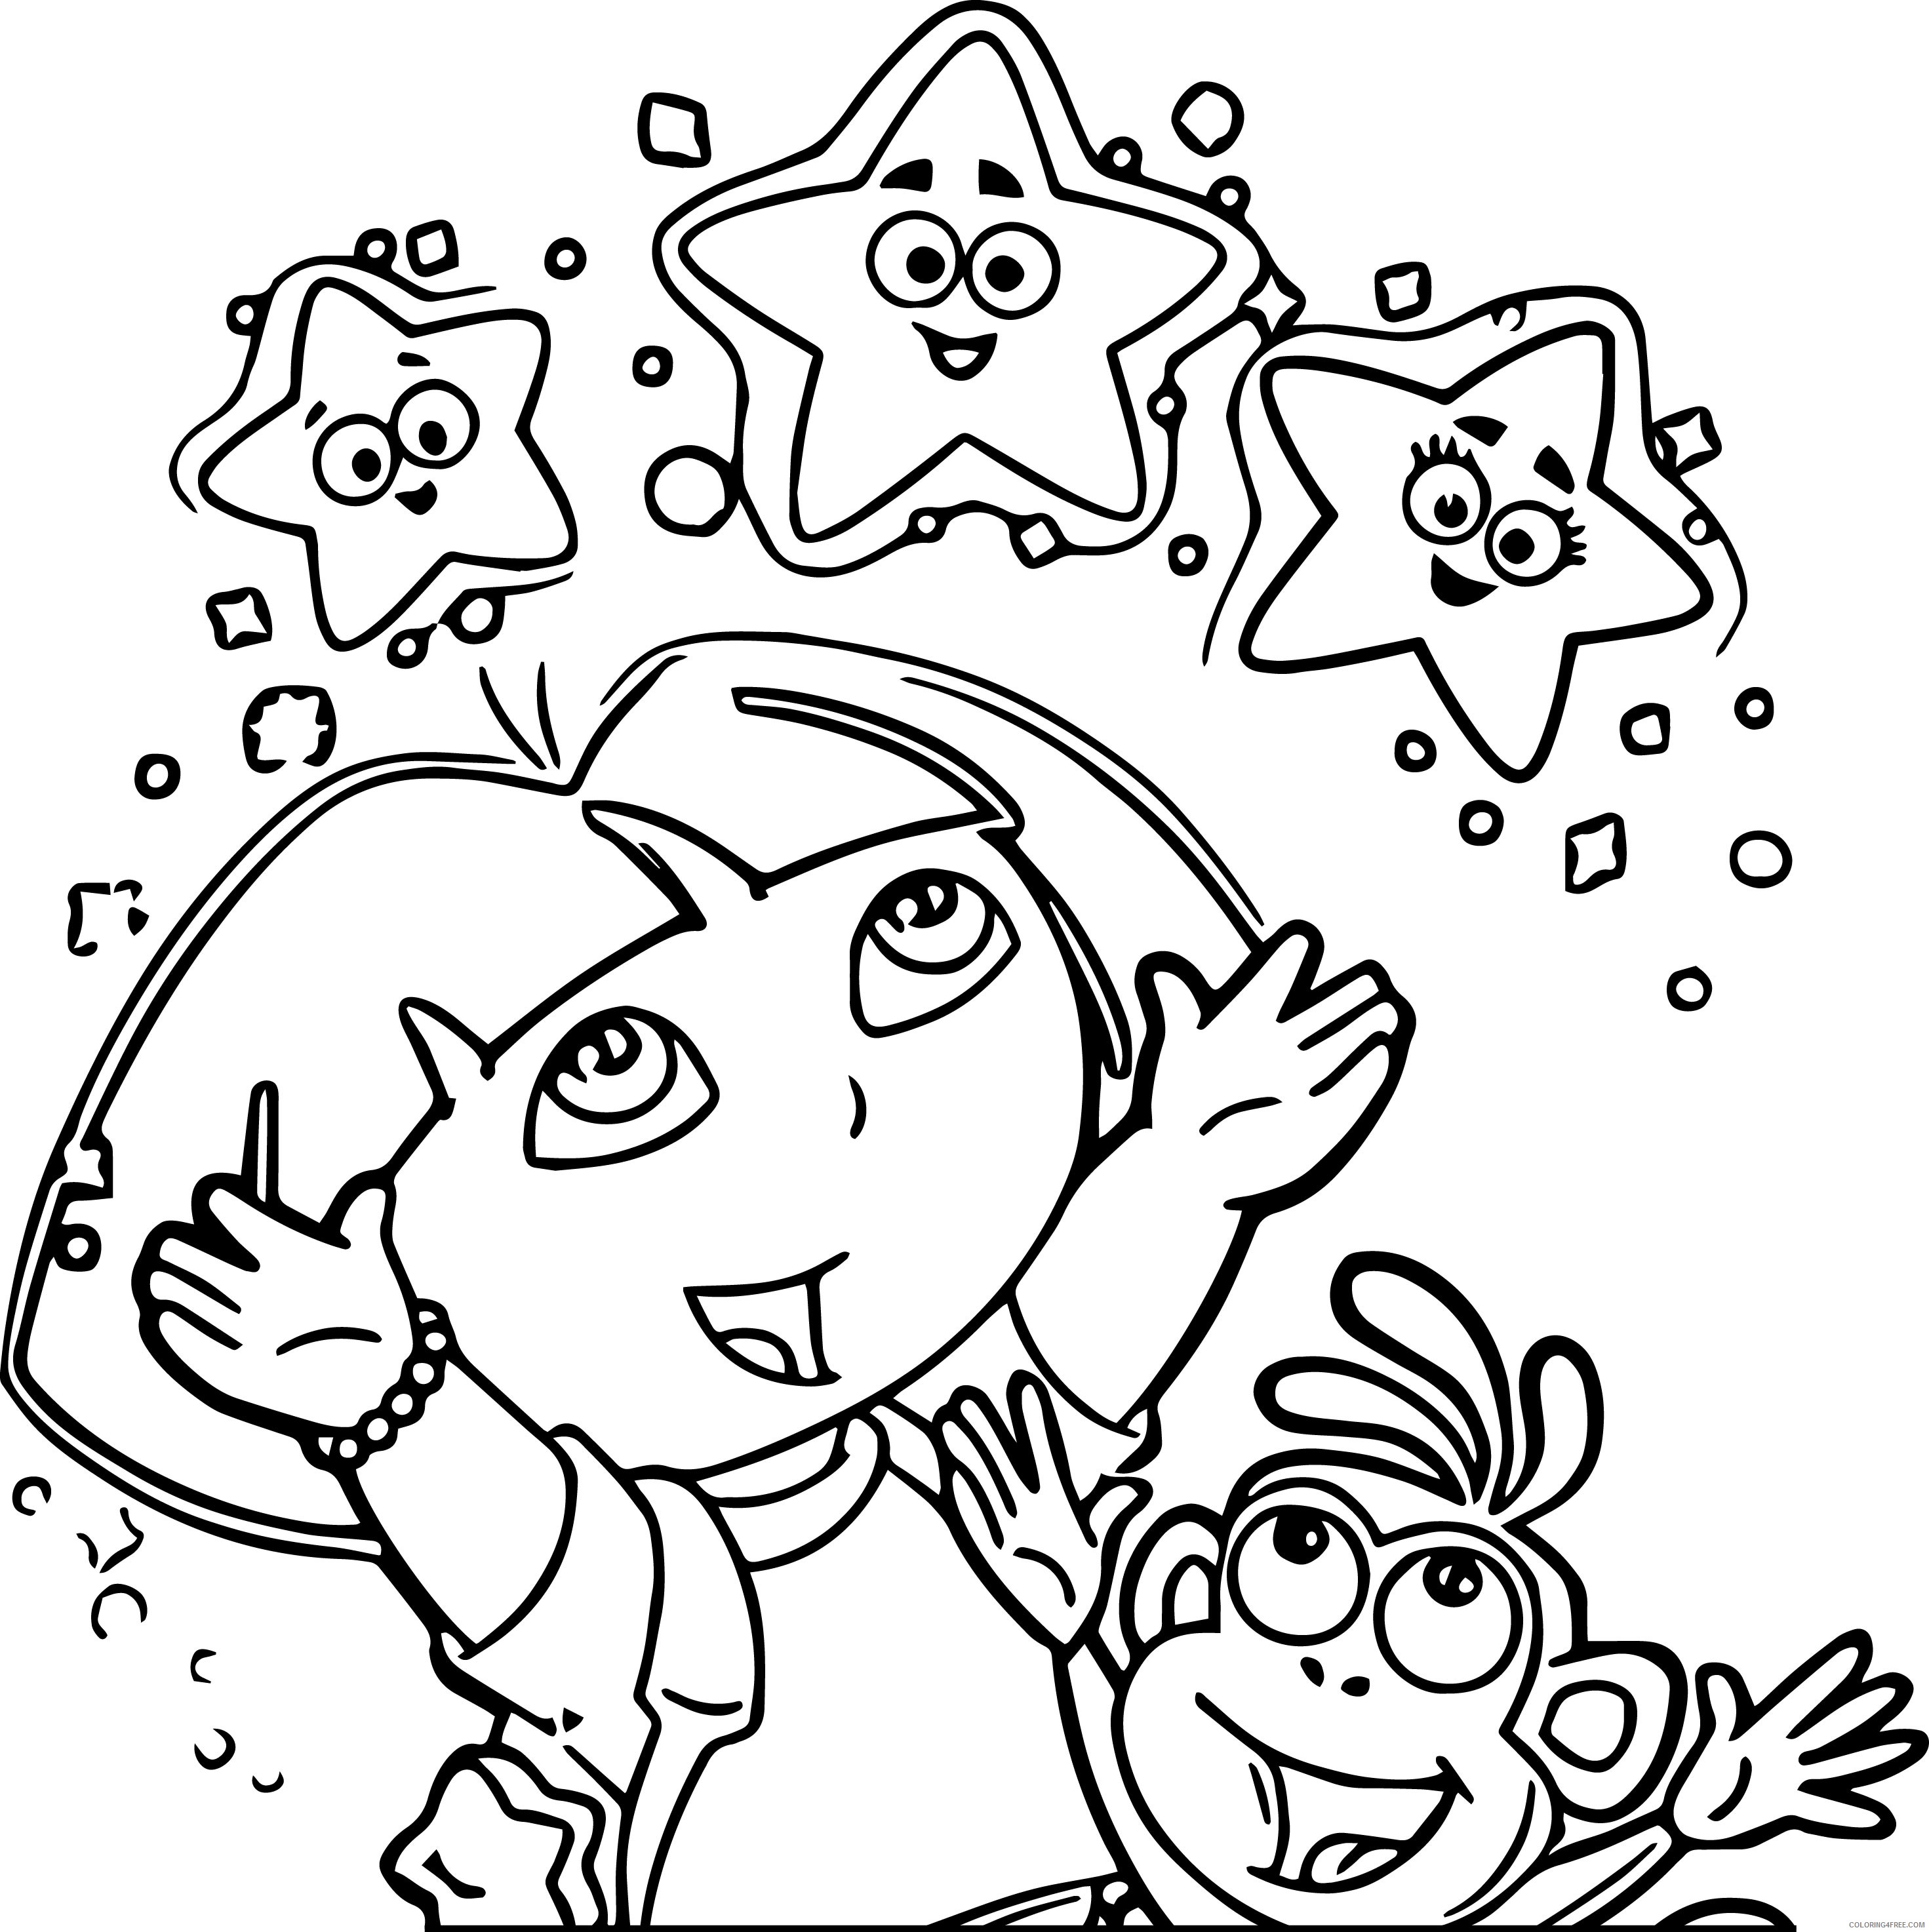 - Dora Coloring Pages Explorer Stars Coloring4free - Coloring4Free.com